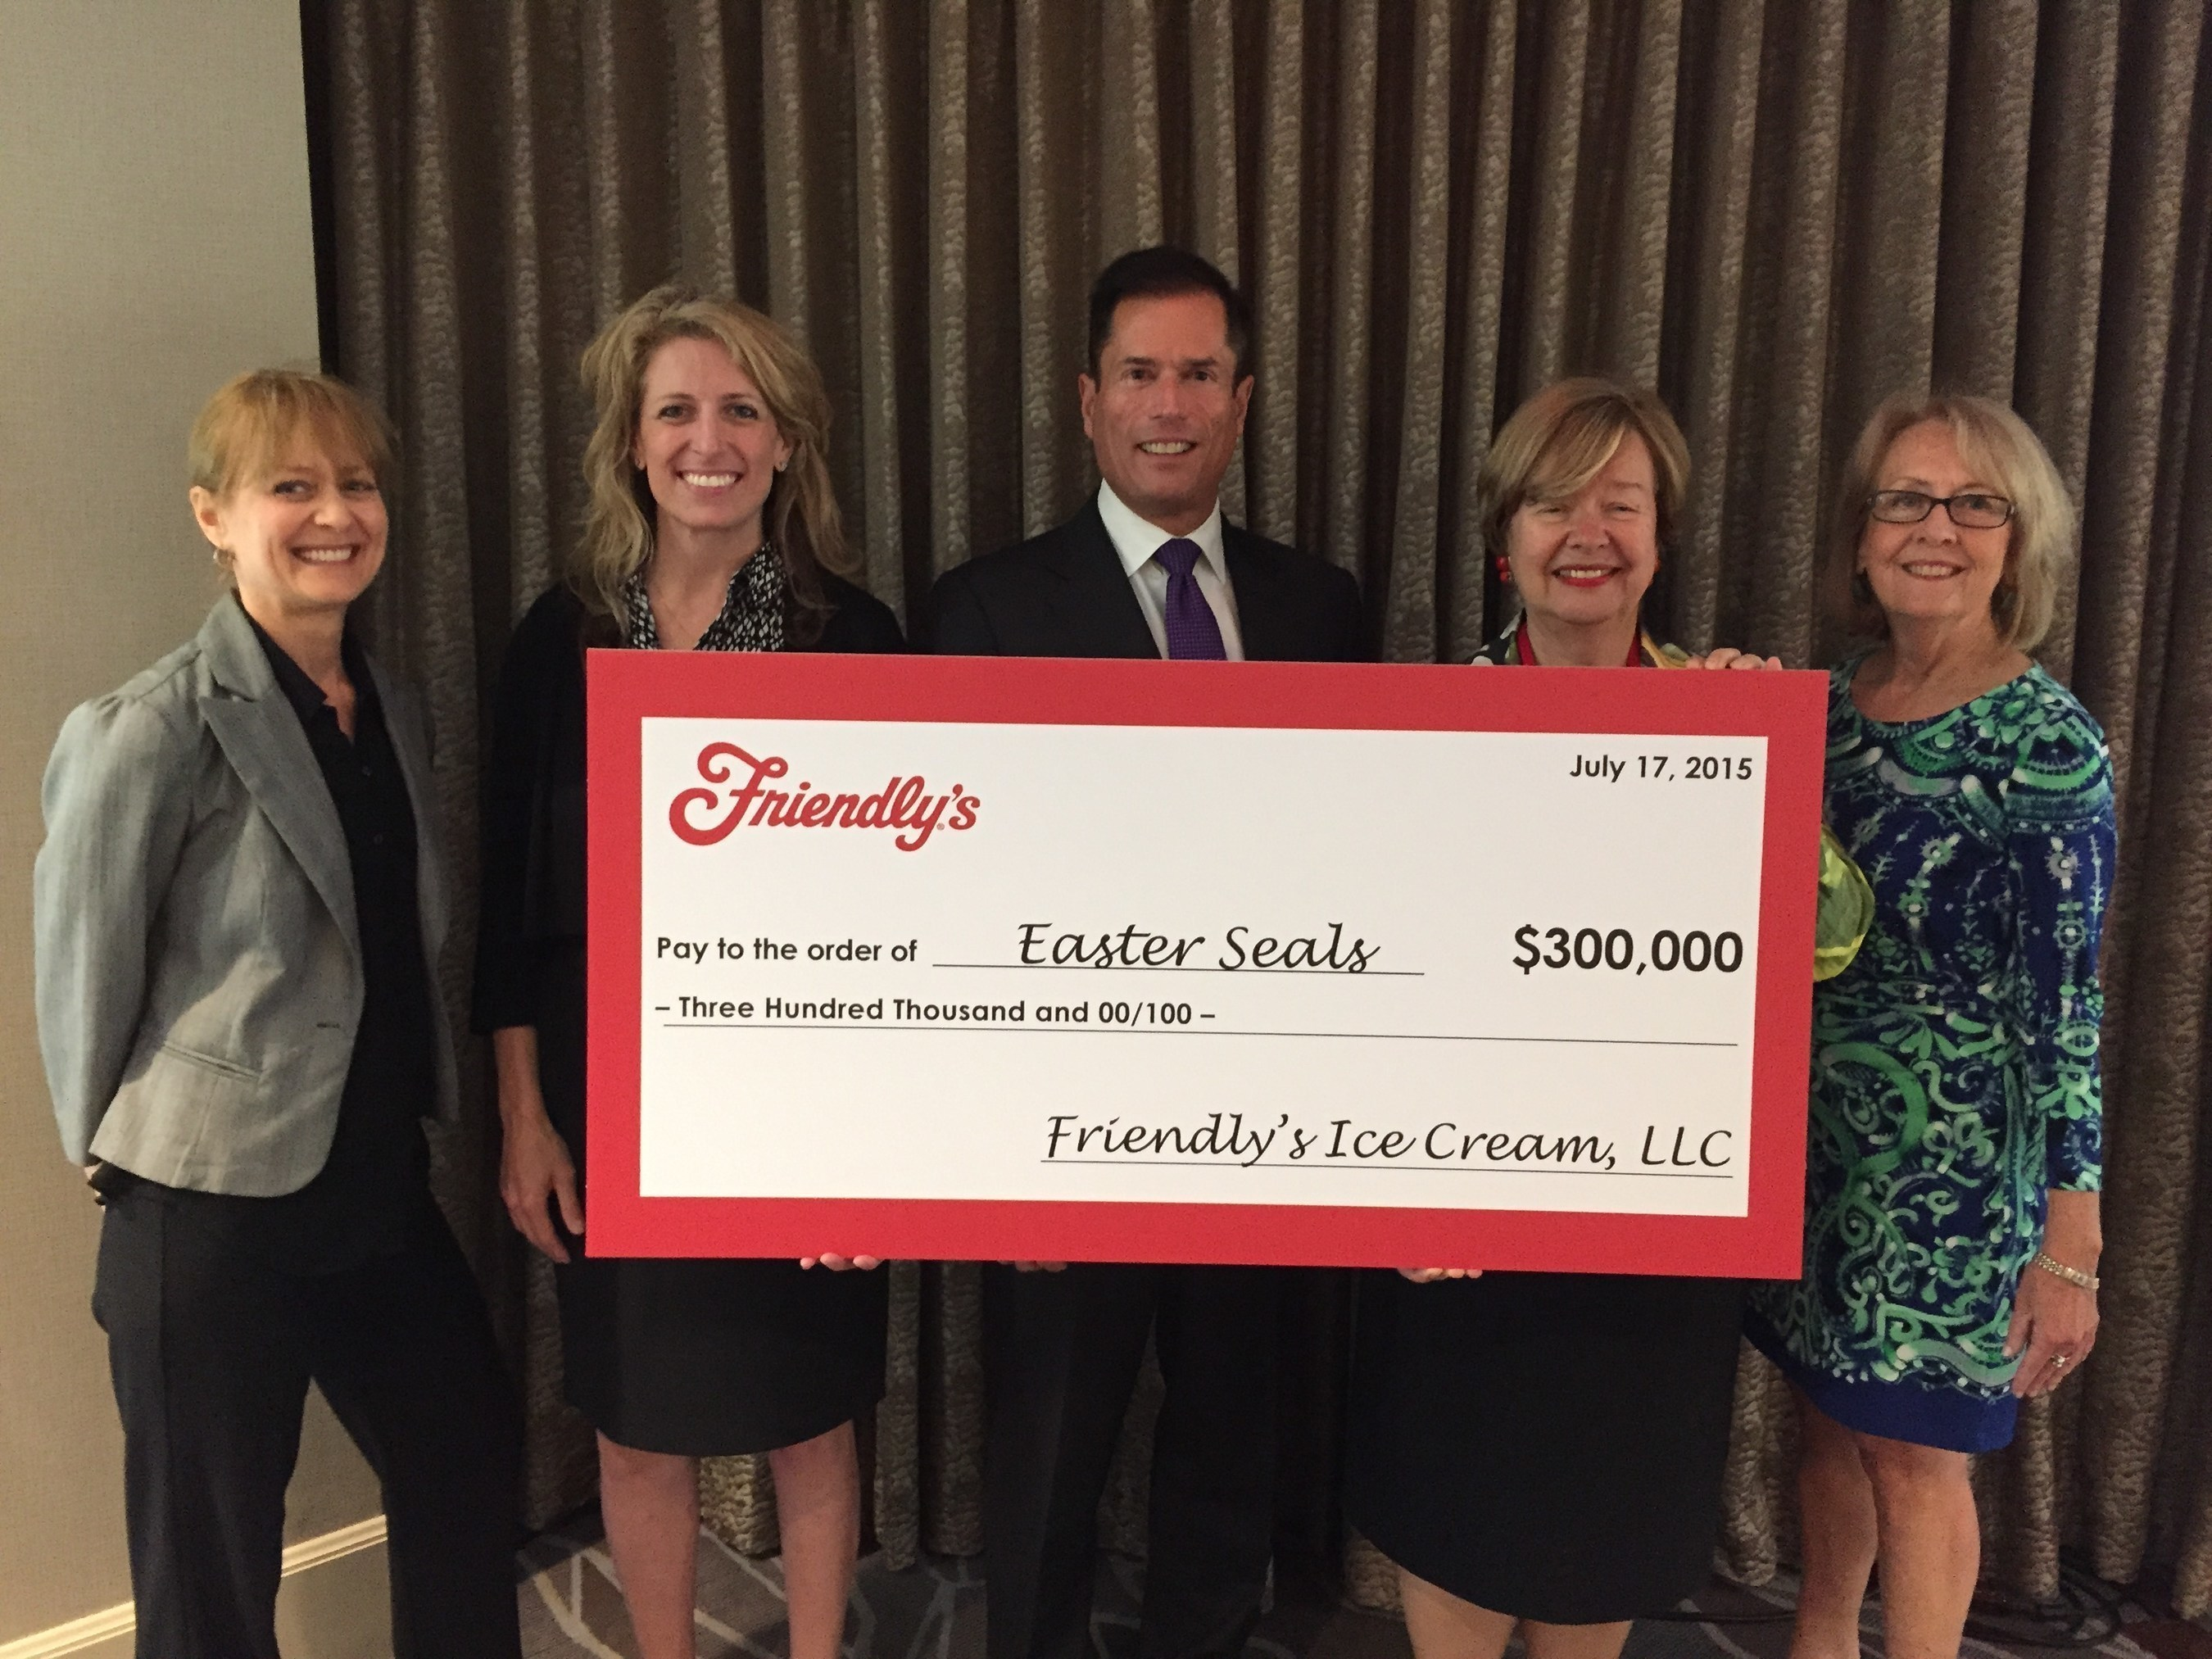 Easter Seals President & CEO, Randy Rutta and Easter Seals staff and board members pictured here receiving Friendly's generous 2015 Cones for Kids gift.